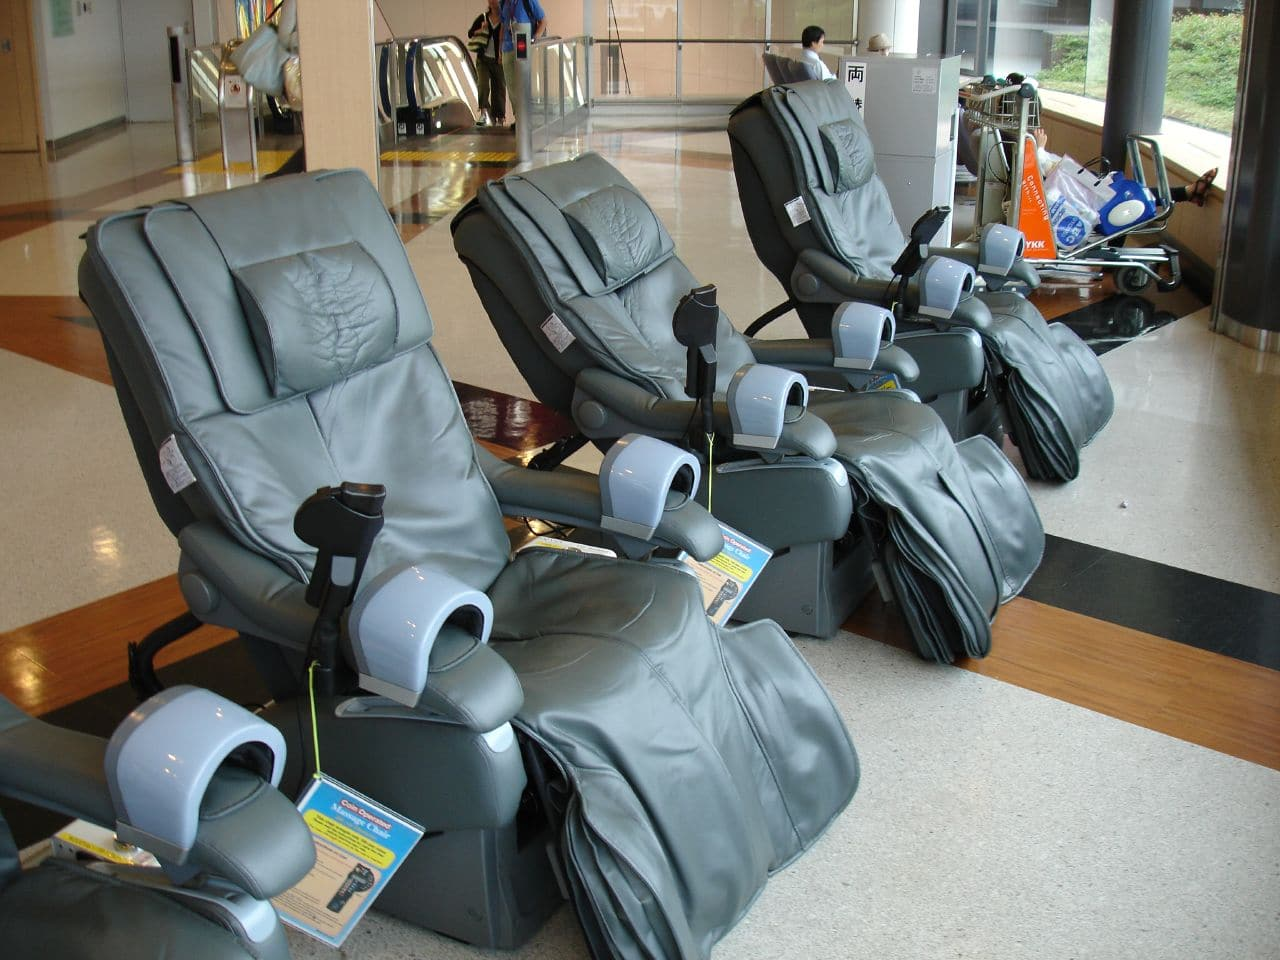 8 practical tips to take care of your massage chair